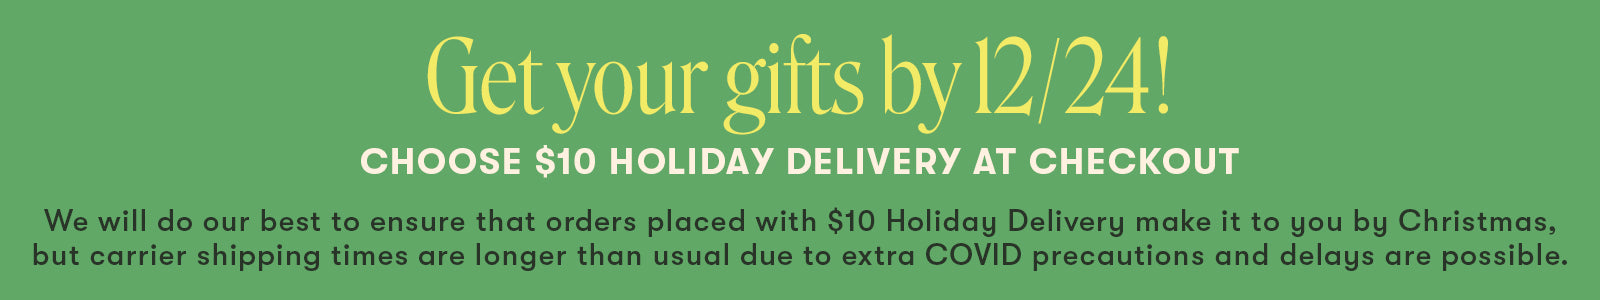 Get your gifts by 12/24 - Choose $10 delivery at checkout